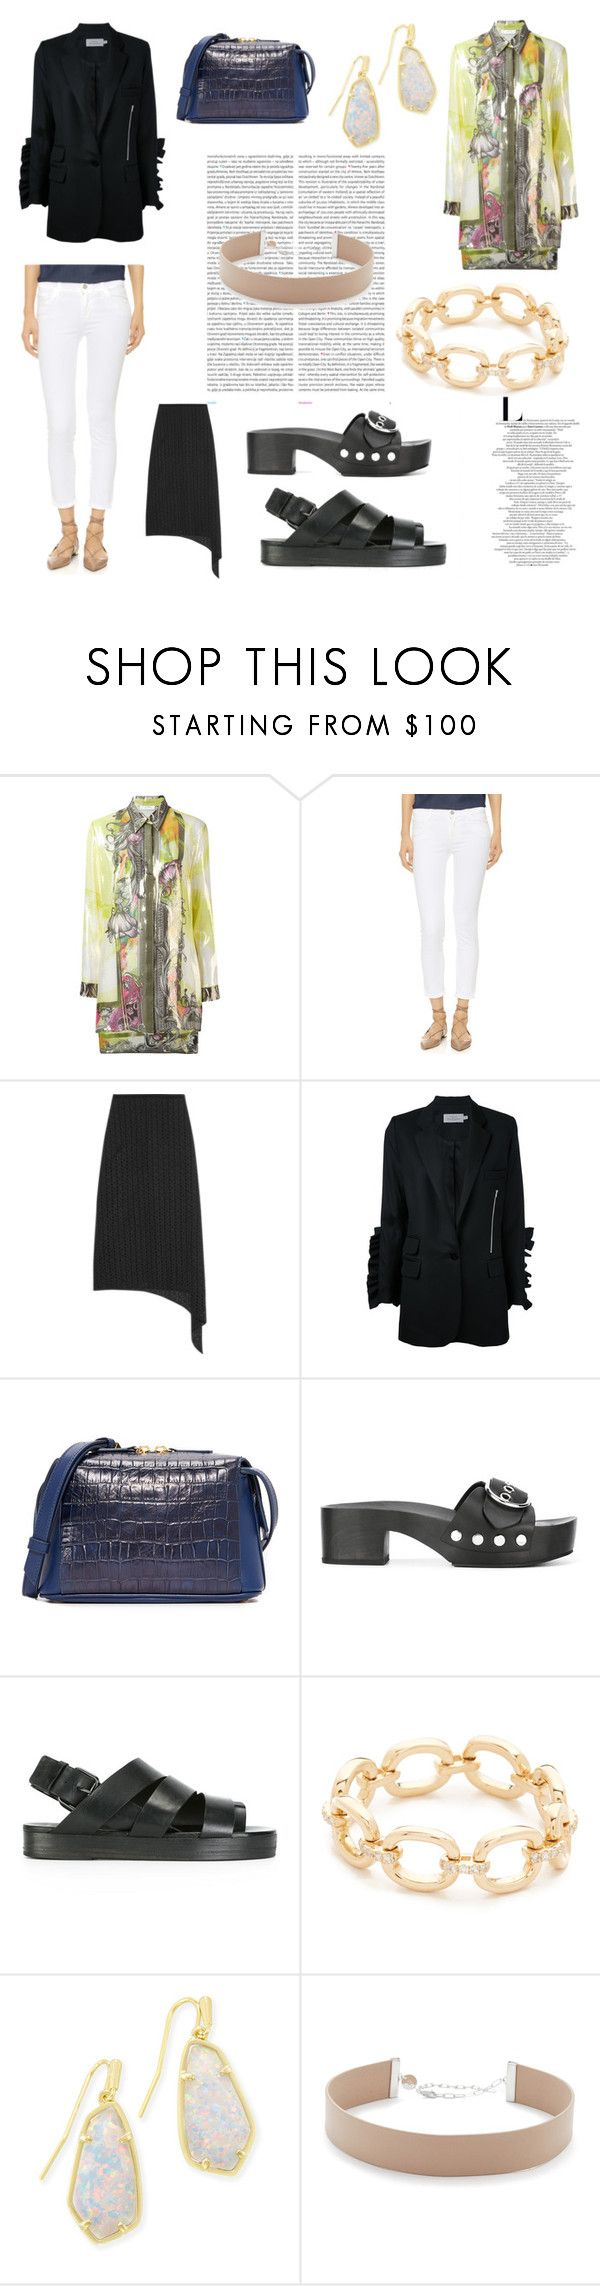 """""""Your Your Style"""" by denisee-denisee ❤ liked on Polyvore featuring Oris, Versace, J Brand, TIBI, Preen, Want Les Essentiels de la Vie, Alexander Wang, Marsèll, EF Collection and Kendra Scott"""